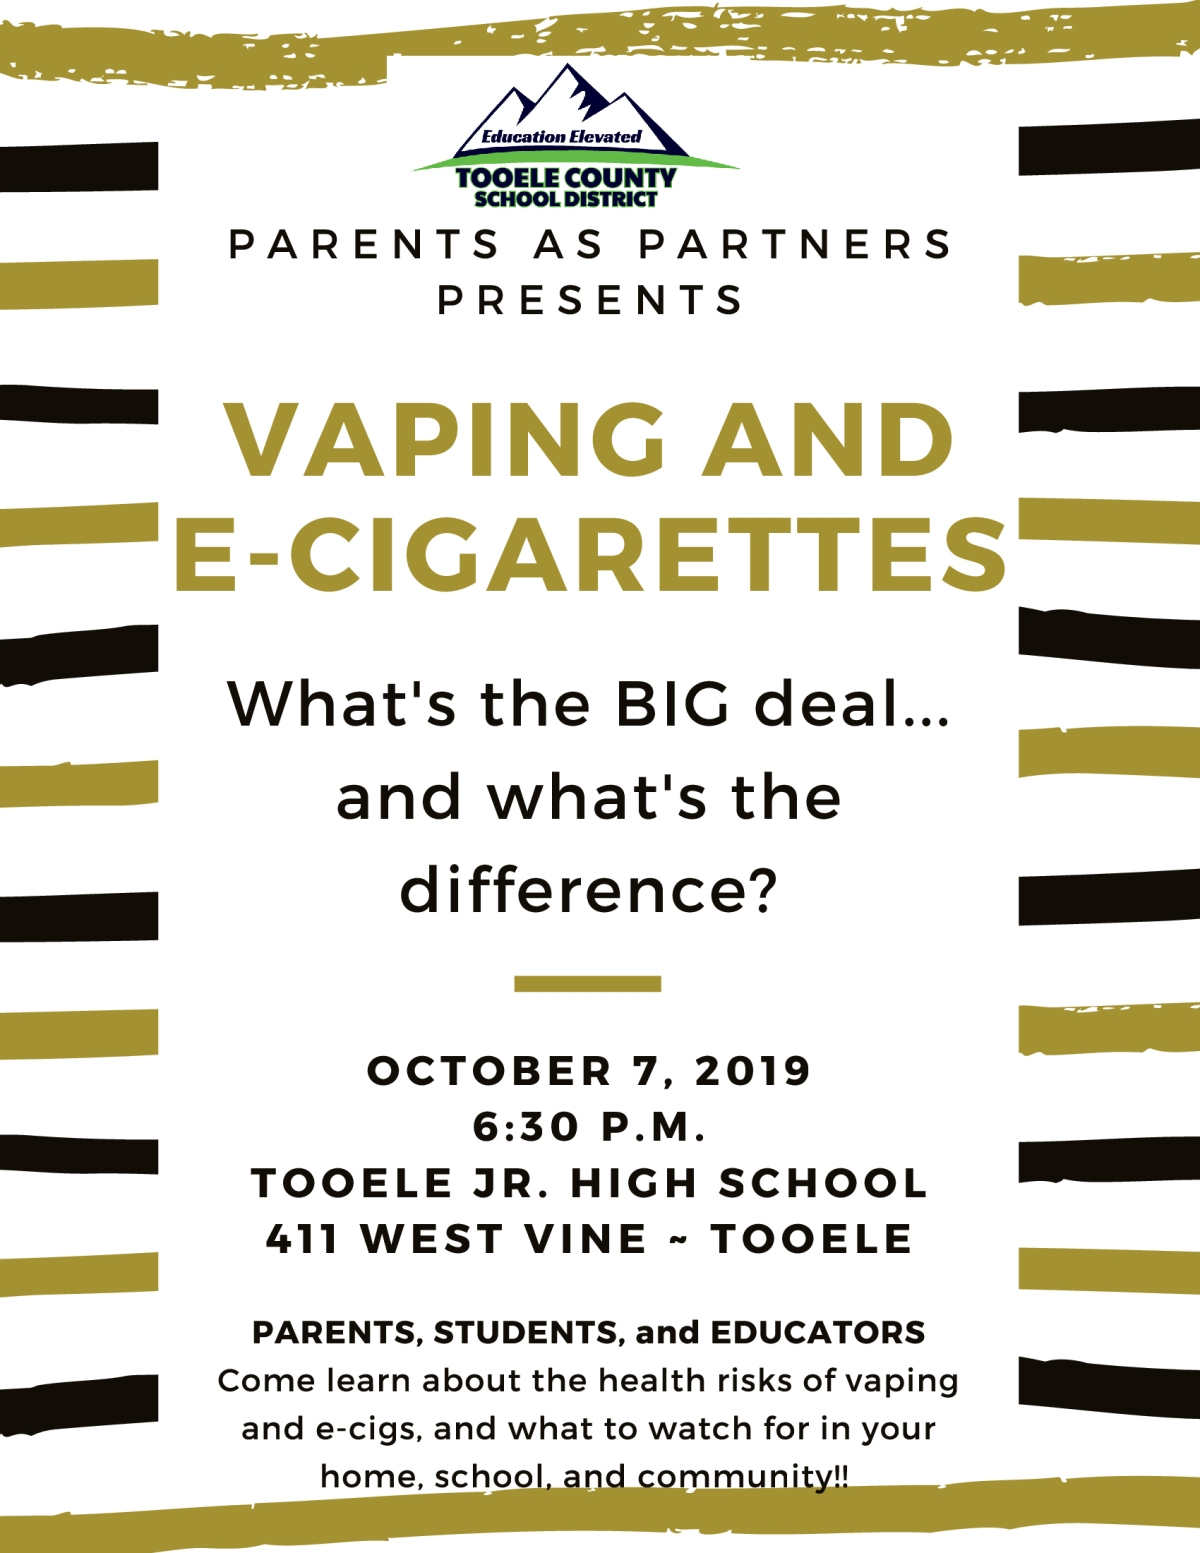 Vaping and e-cigarettes October 2019